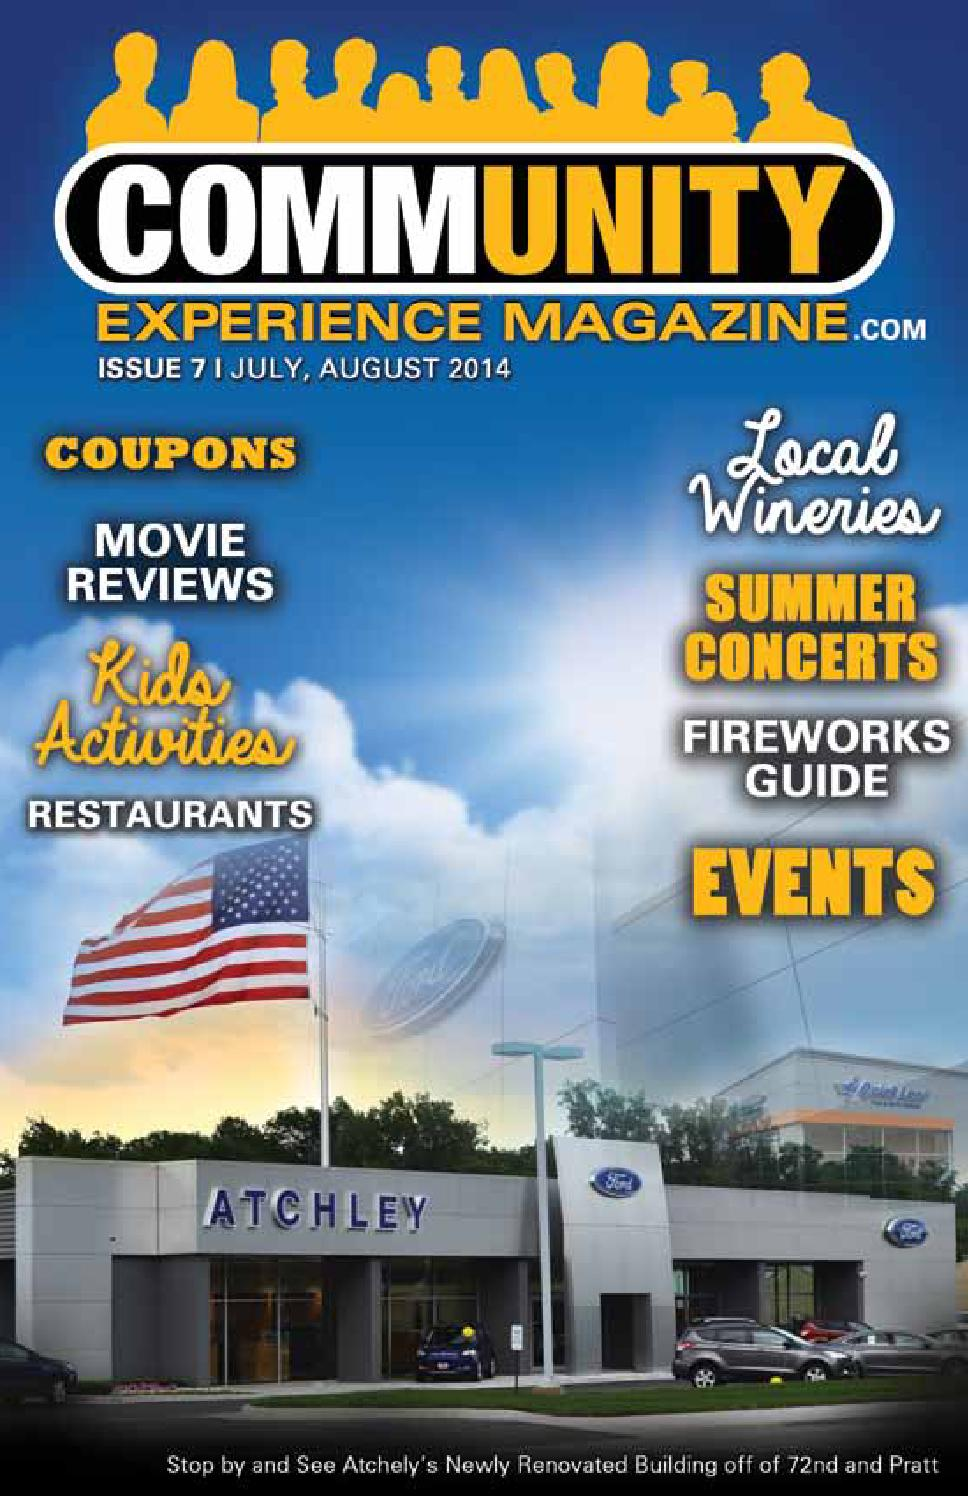 Community Experience Magazine July/August 2014 Issue 7 by Community